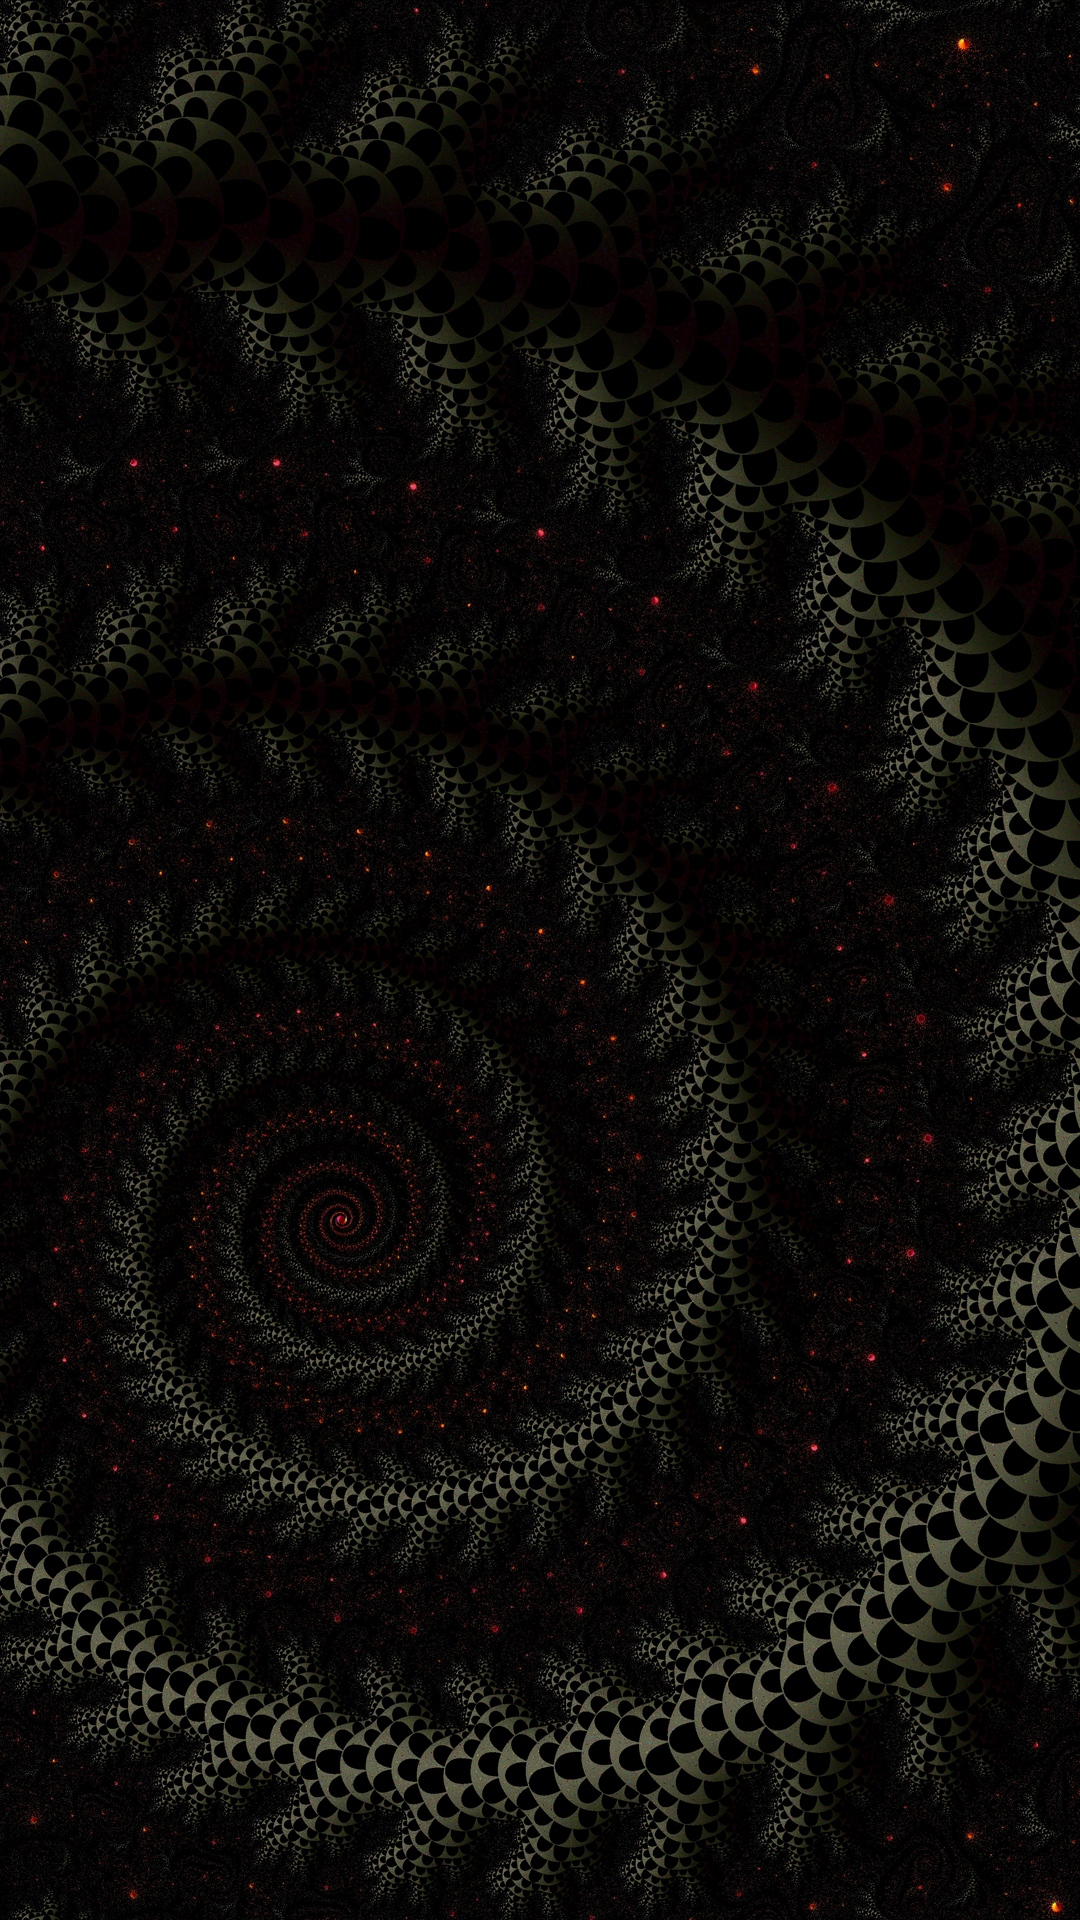 Download wallpaper 1080x1920 spiral fractal dark twisted 1080x1920